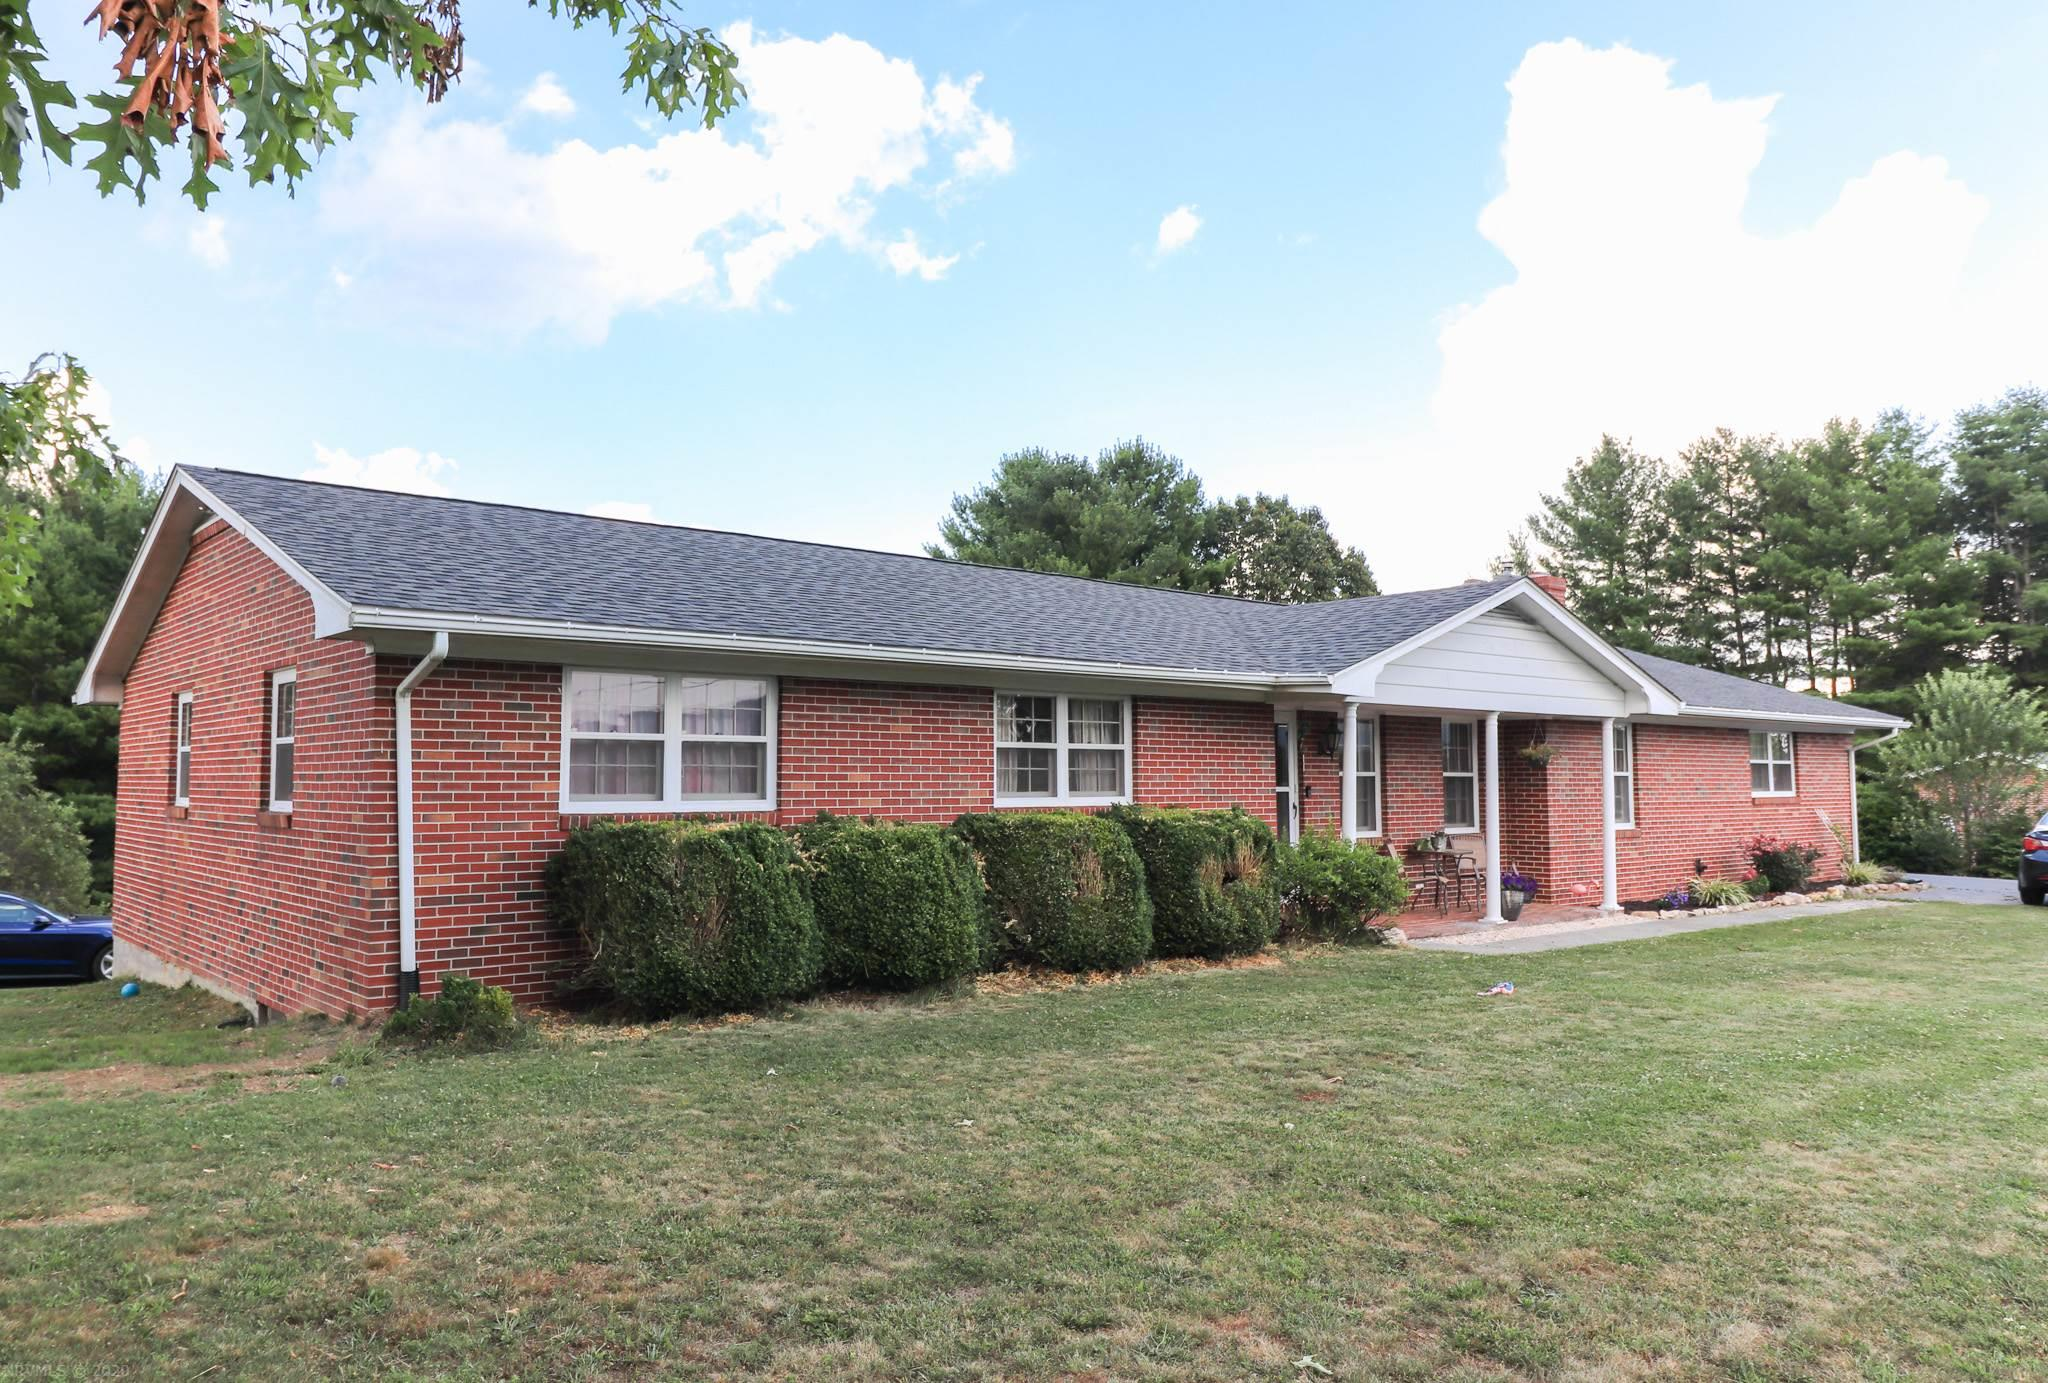 Beautiful large country brick ranch home with long range views in Floyd County. This property offers up to 5 bedrooms and 3 full baths with multi level living. Lots of recent updates making this a turn key dream for a family. Hardwood floors , custom tilework , new Hvac , newer roof , remodeled bathrooms , and fresh paint is just a few of the items you will find during your visit. Large kitchen with island is open and spacious joining the Living room. Main level laundry located  just off dining room and study.Master bedroom has on suite bathroom with standup tile shower and large vanity sink. Downstairs offers fully finished living area and kitchenette. 2 more bedrooms and full bath round out the finished basement with large rock fireplace in den and gameroom. Outside you will find joining sunroom and 2 car detached garage. Fenced in garden space and mature trees with level yard. A must see to appreciate!